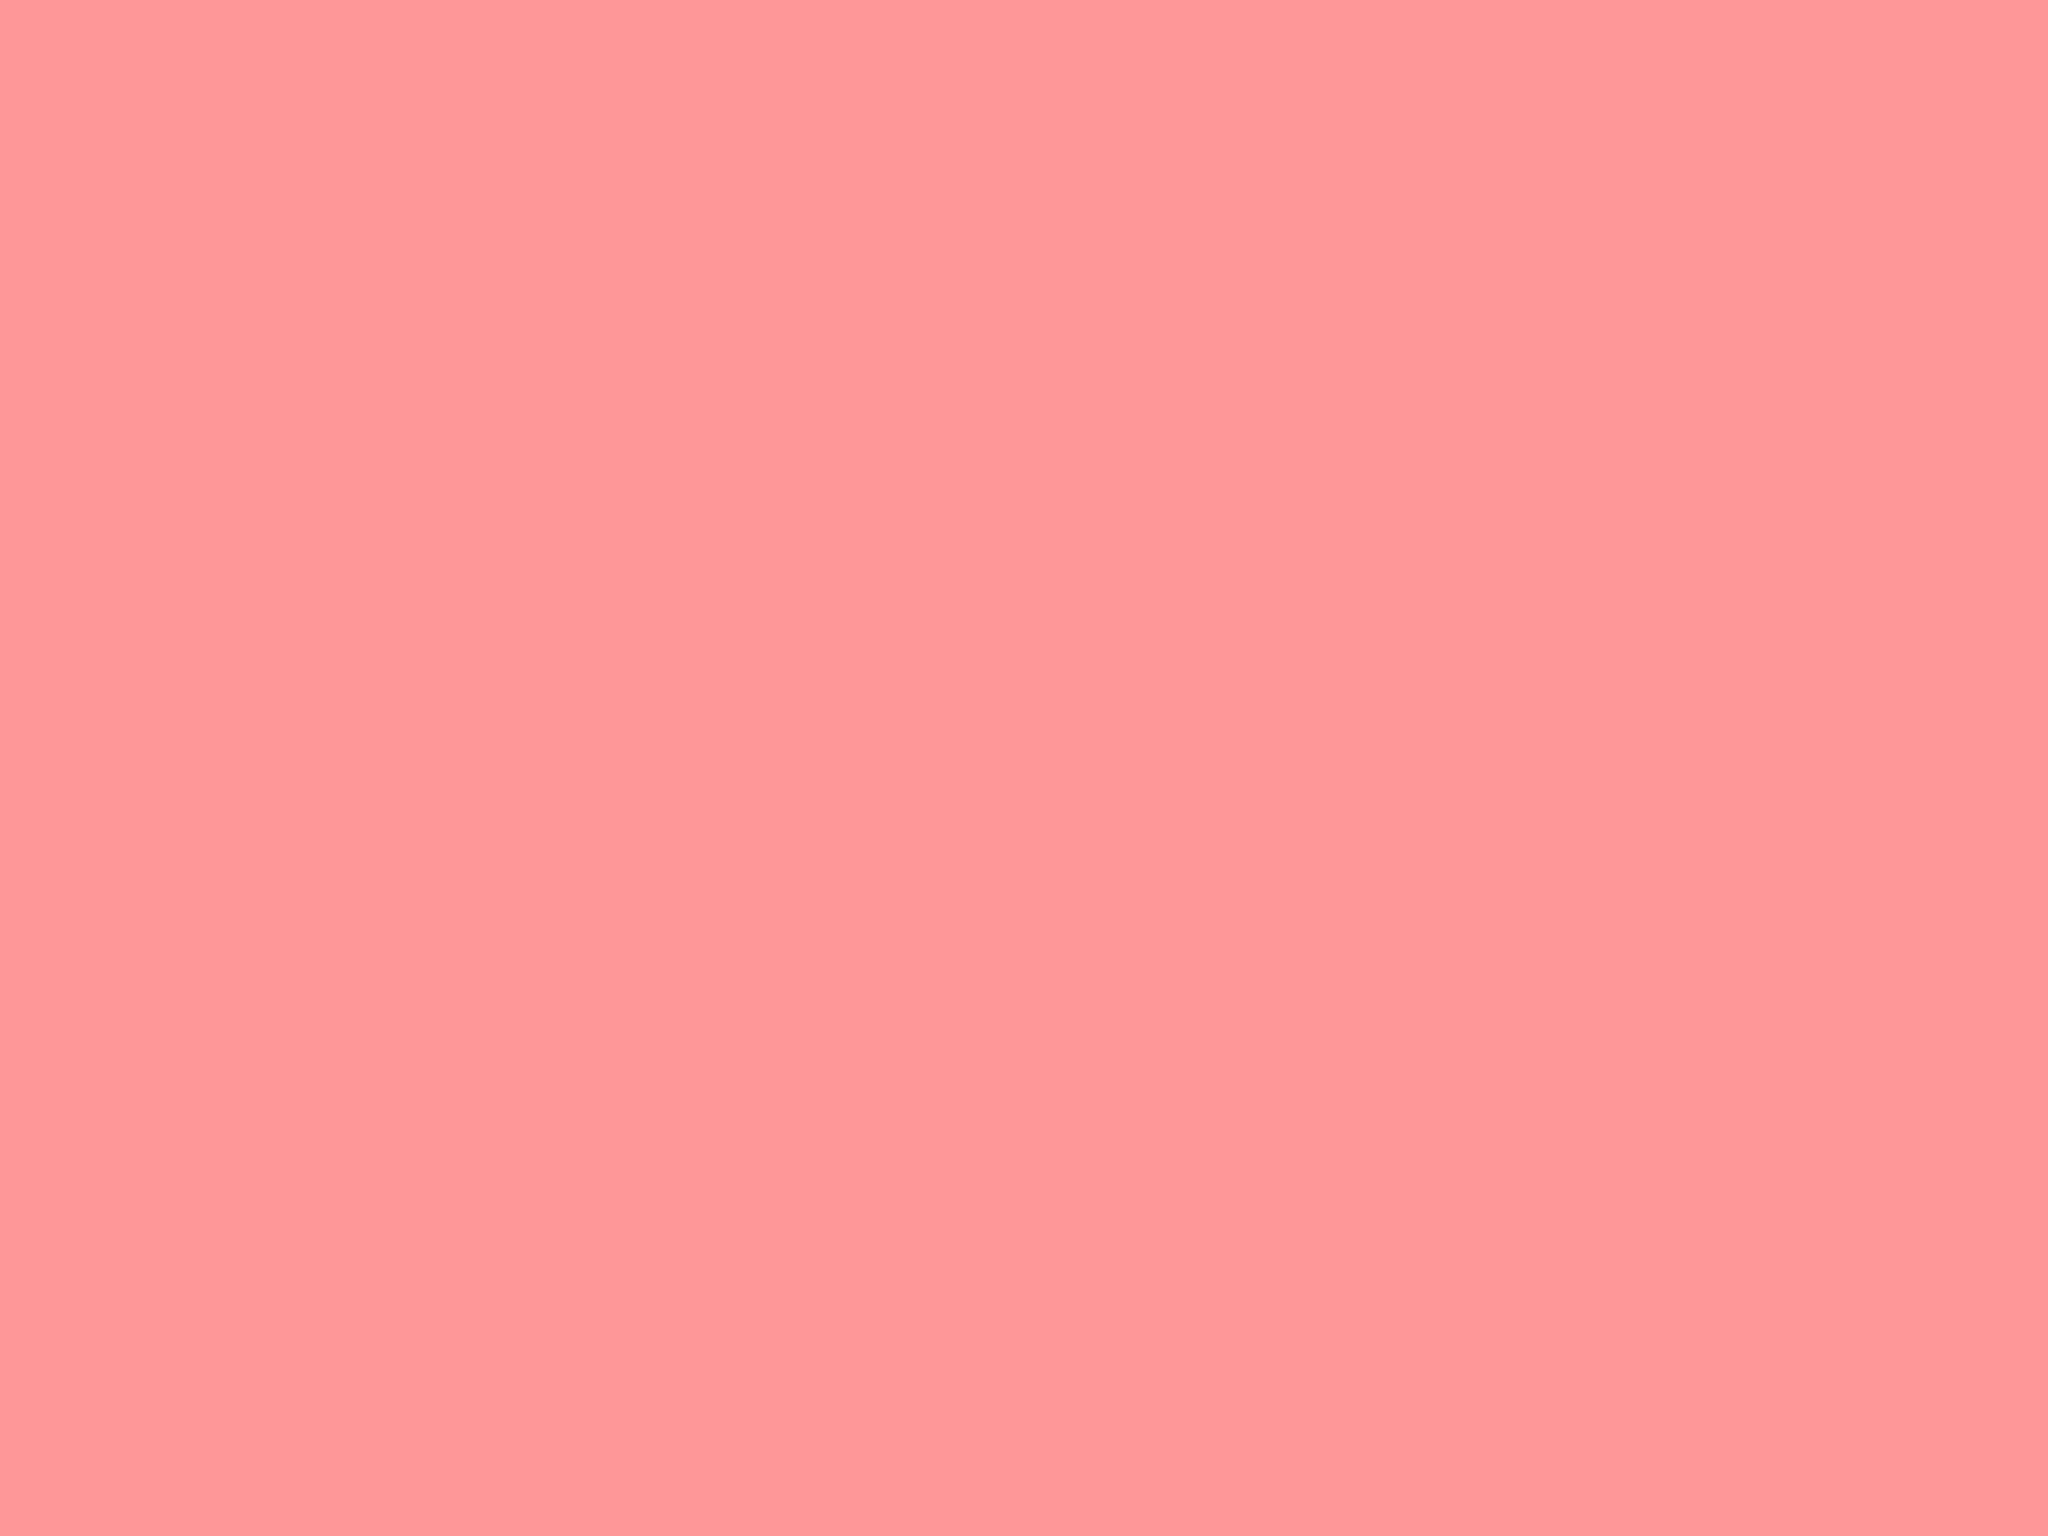 light pink solid background gallery